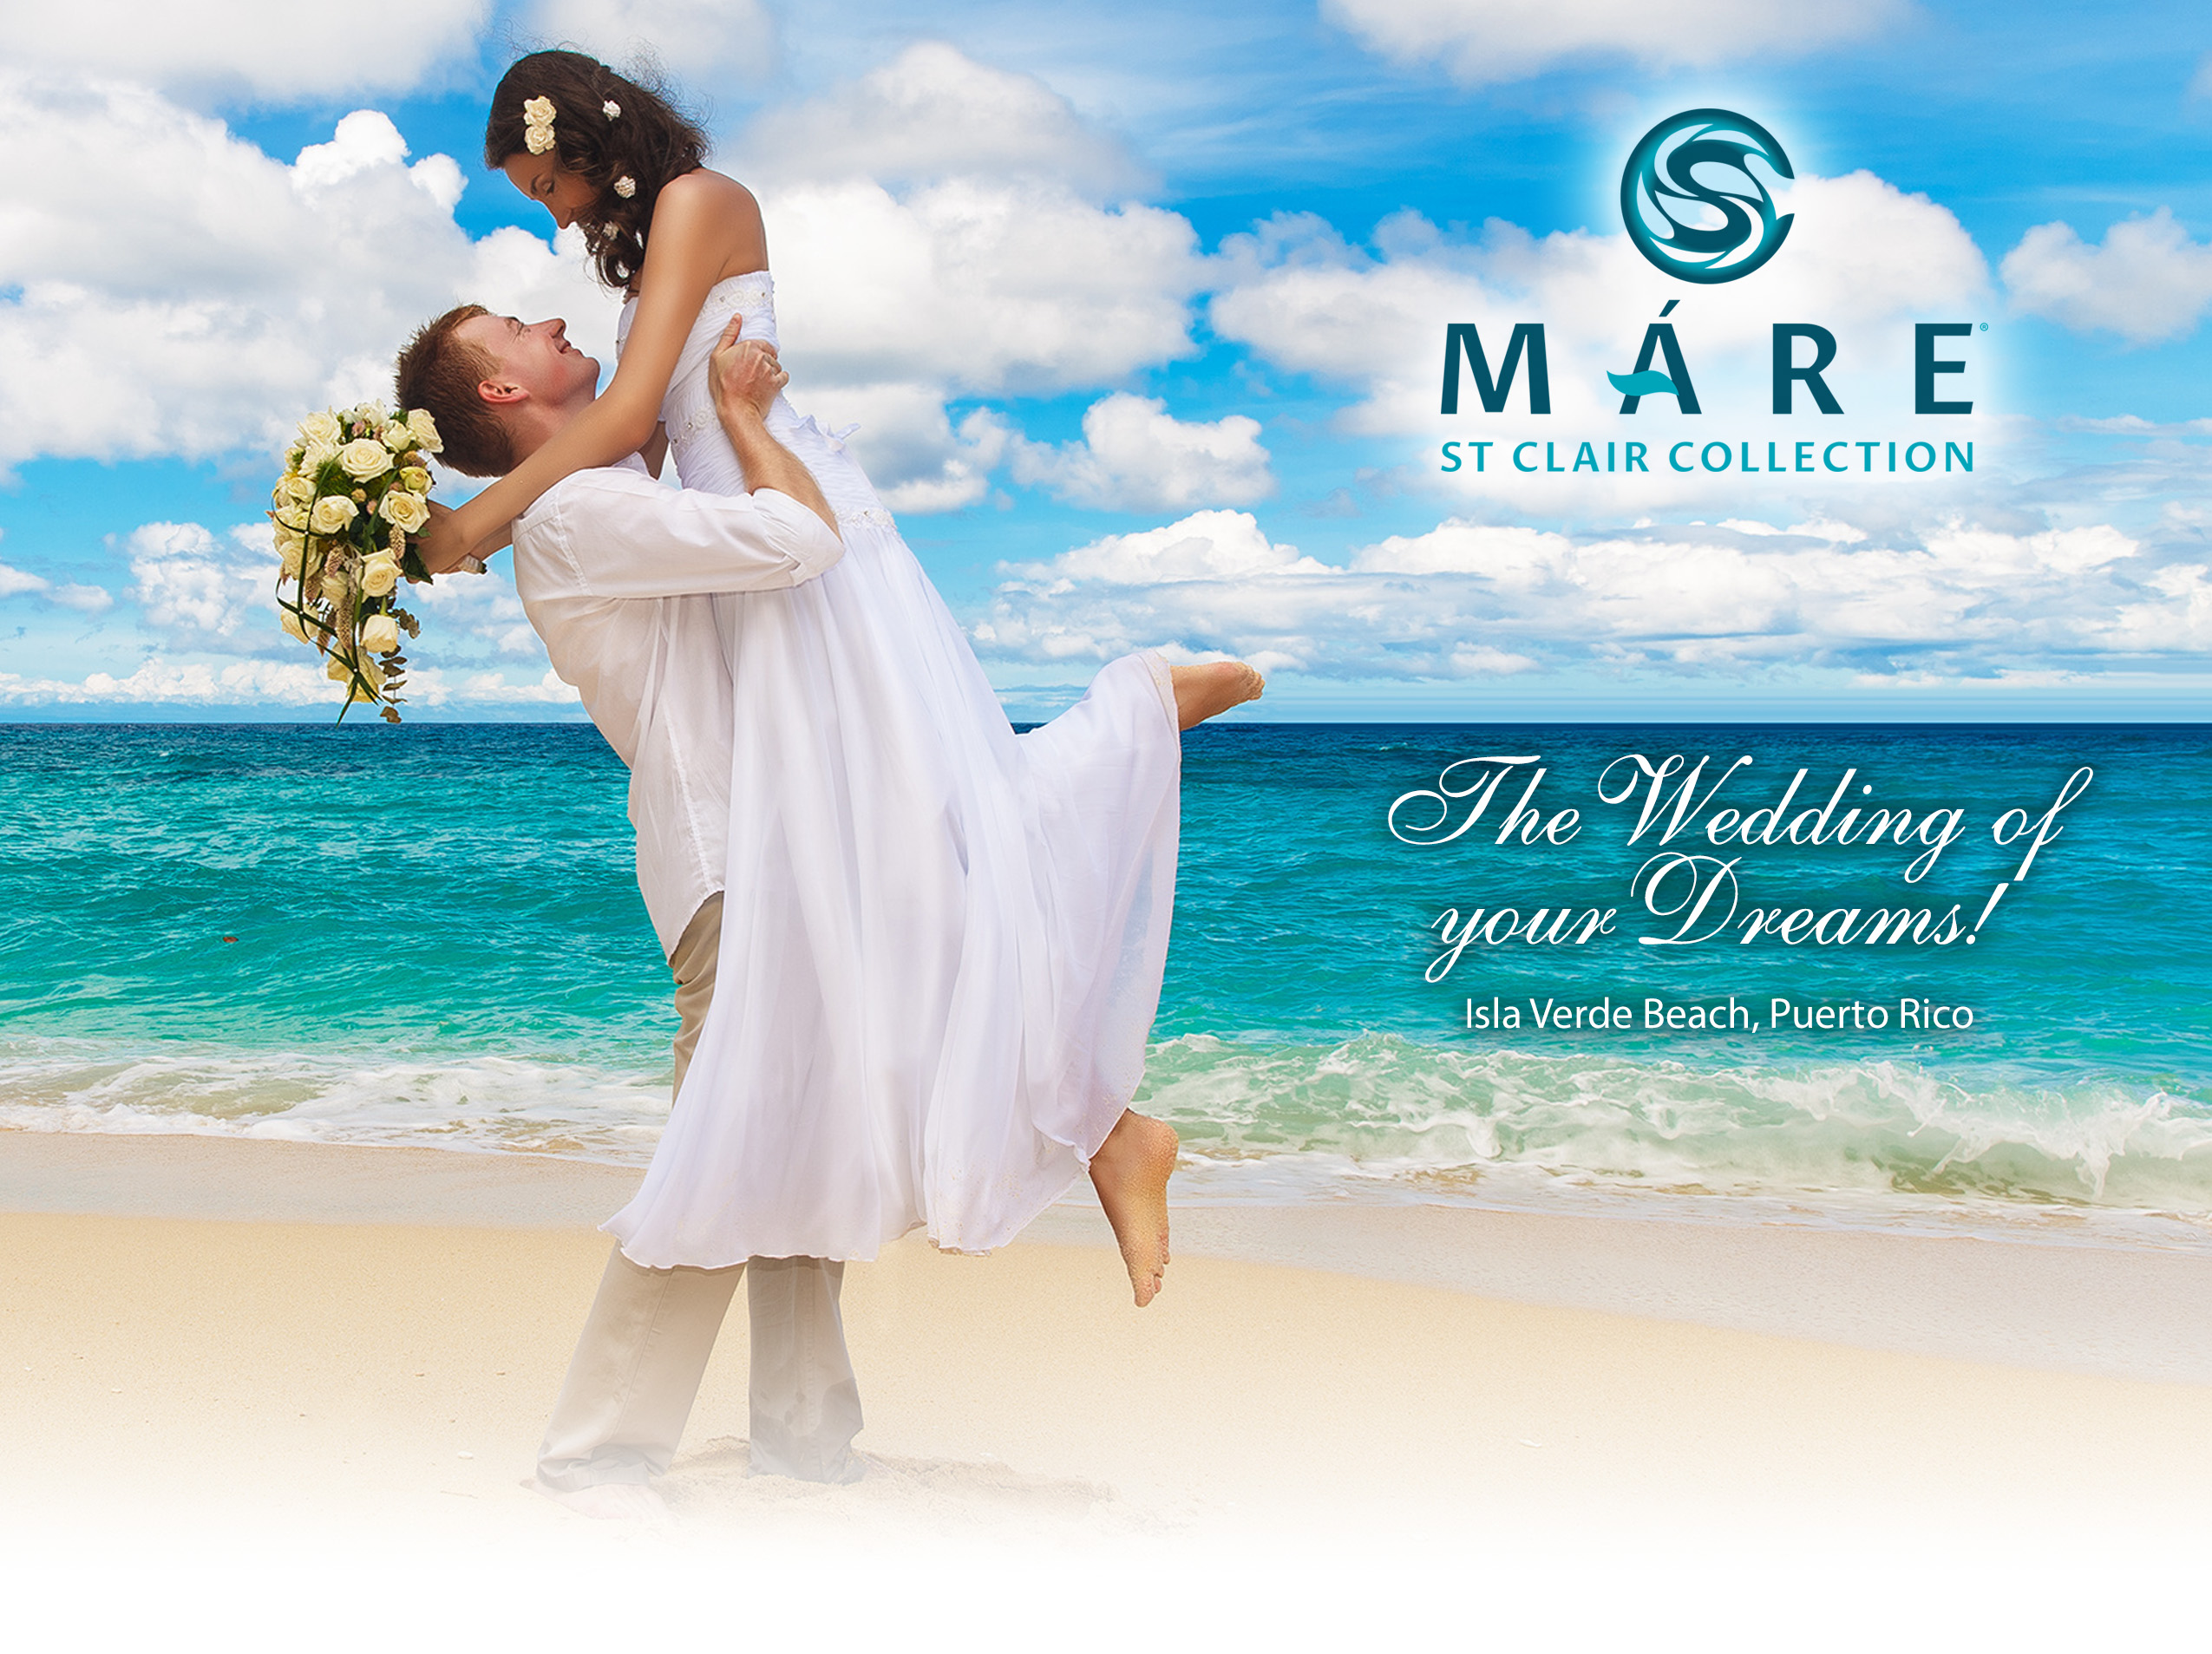 Destination Wedding at Máre St. Clair Hotel, Isla Verde Beach, Puerto Rico